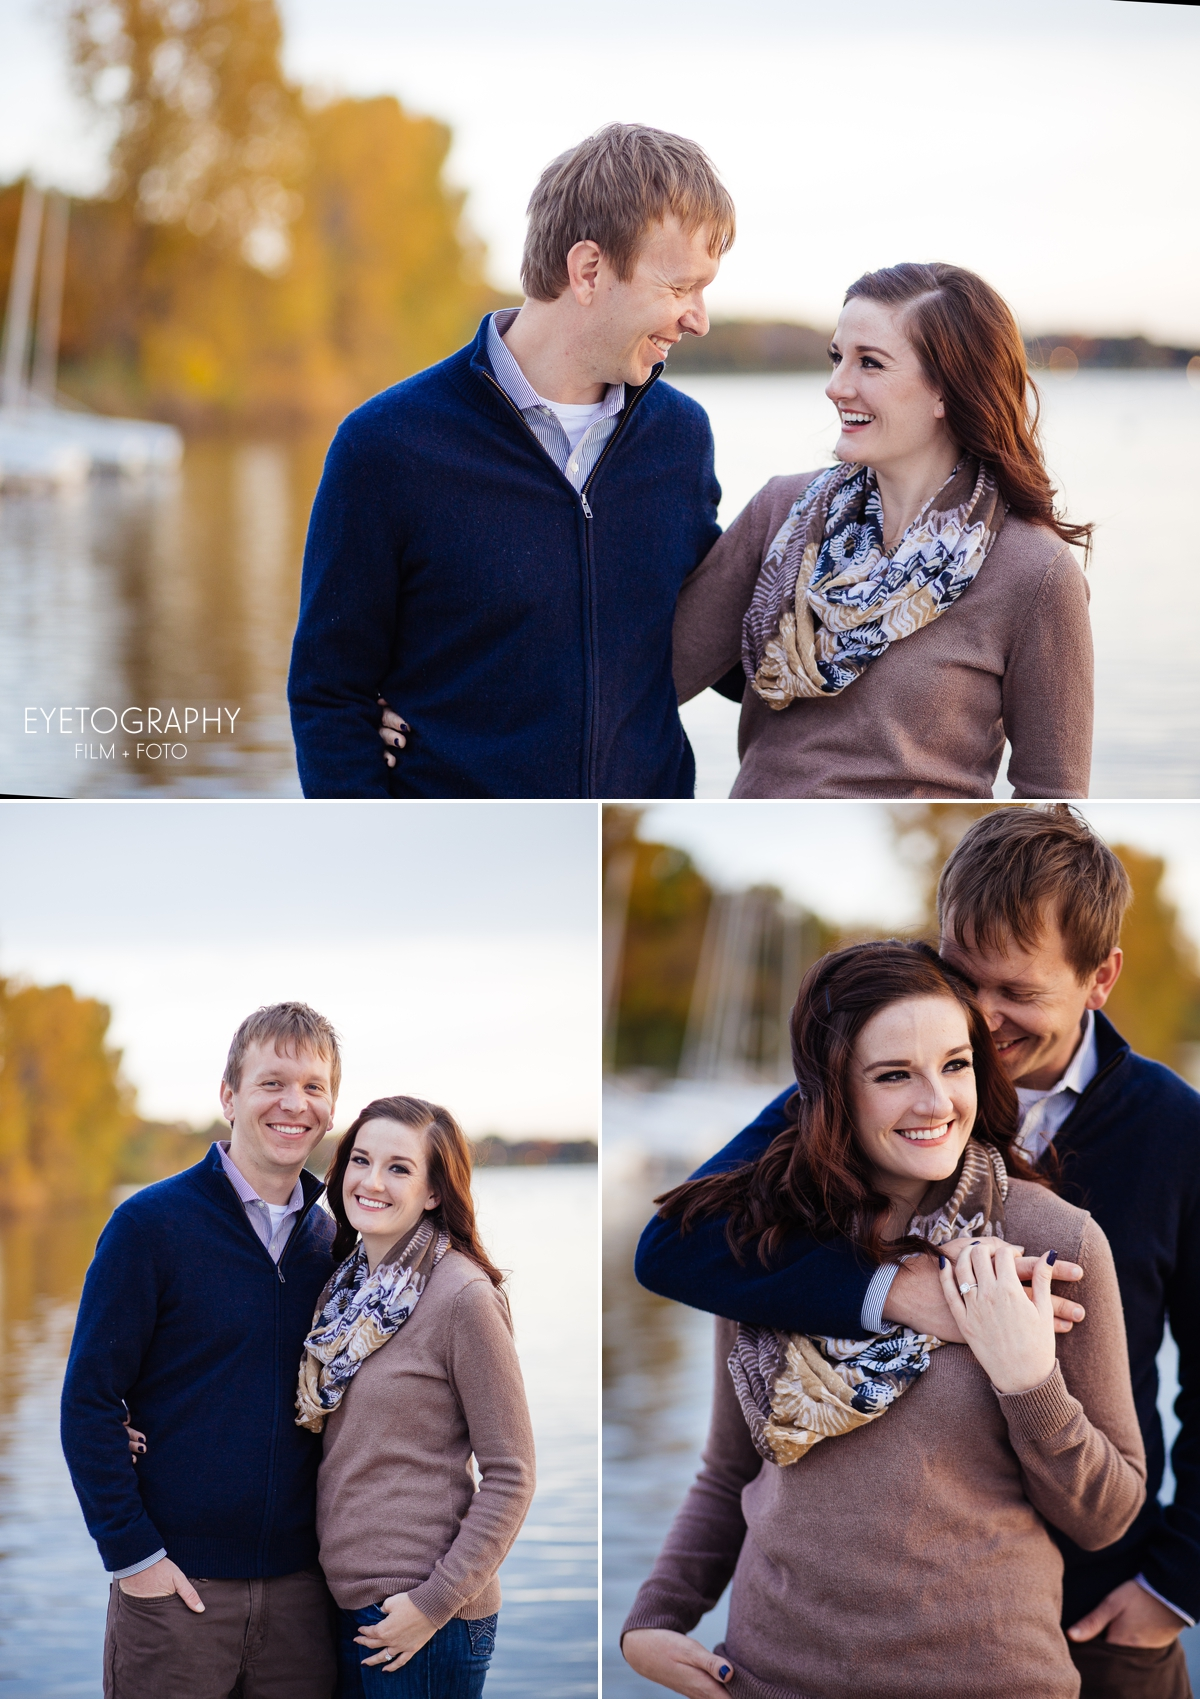 Minneapolis Fall Engagement Photography | Jaimie + Dan | Eyetography FIlm + Foto 3